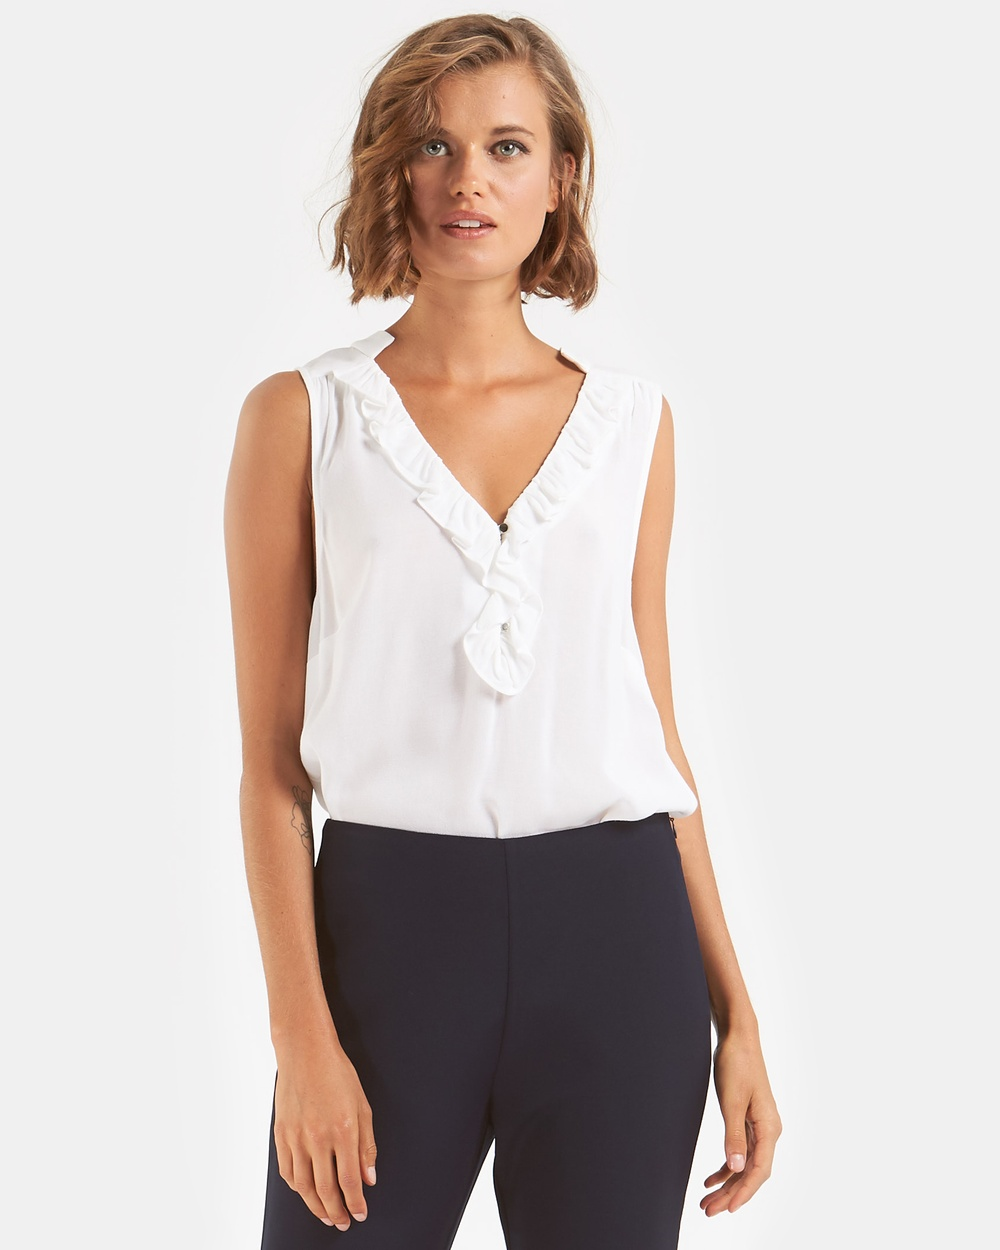 Amelius Elsa Sleeveless Top Tops Ivory Elsa Sleeveless Top